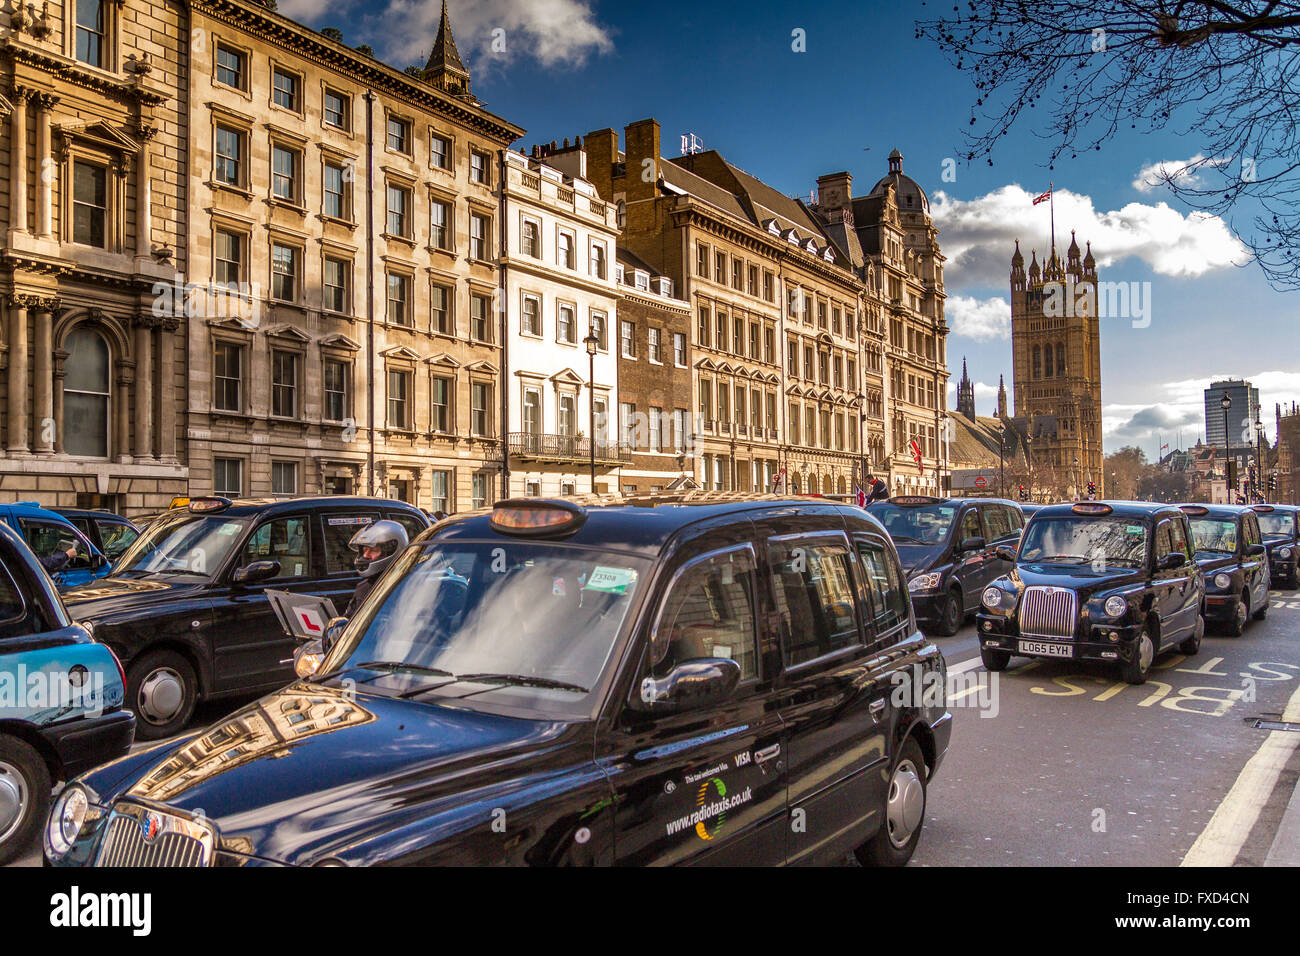 London Taxi Drivers Association Protest against Uber in London, hundred of Black London Taxis blockade Whitehall Stock Photo